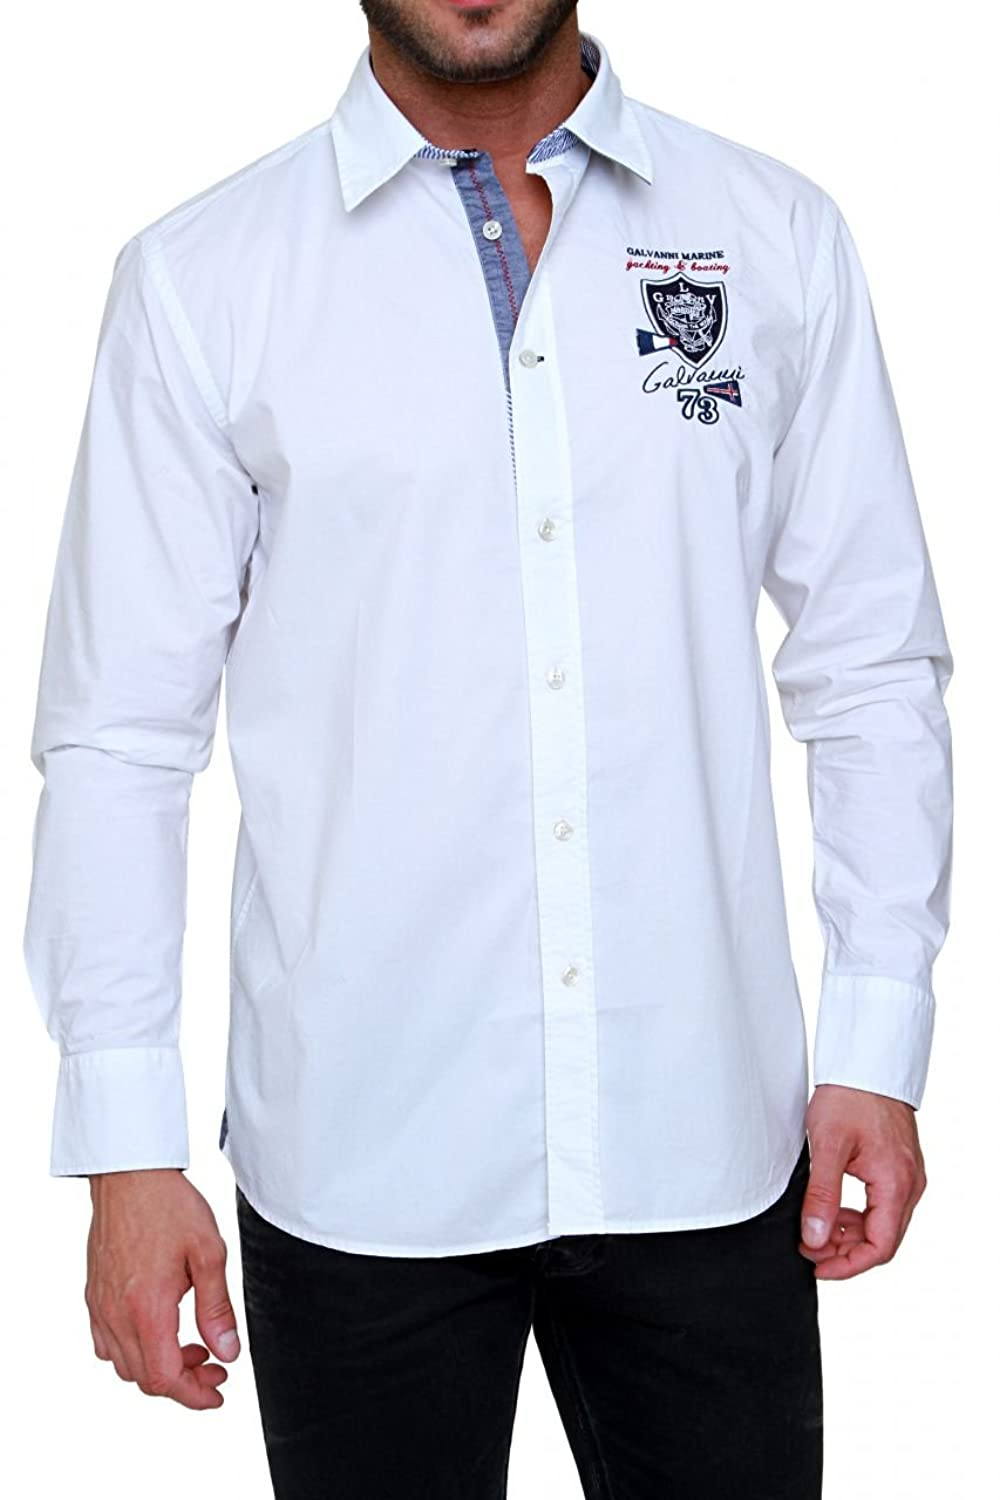 Galvanni Shirt BORIS, Color: White